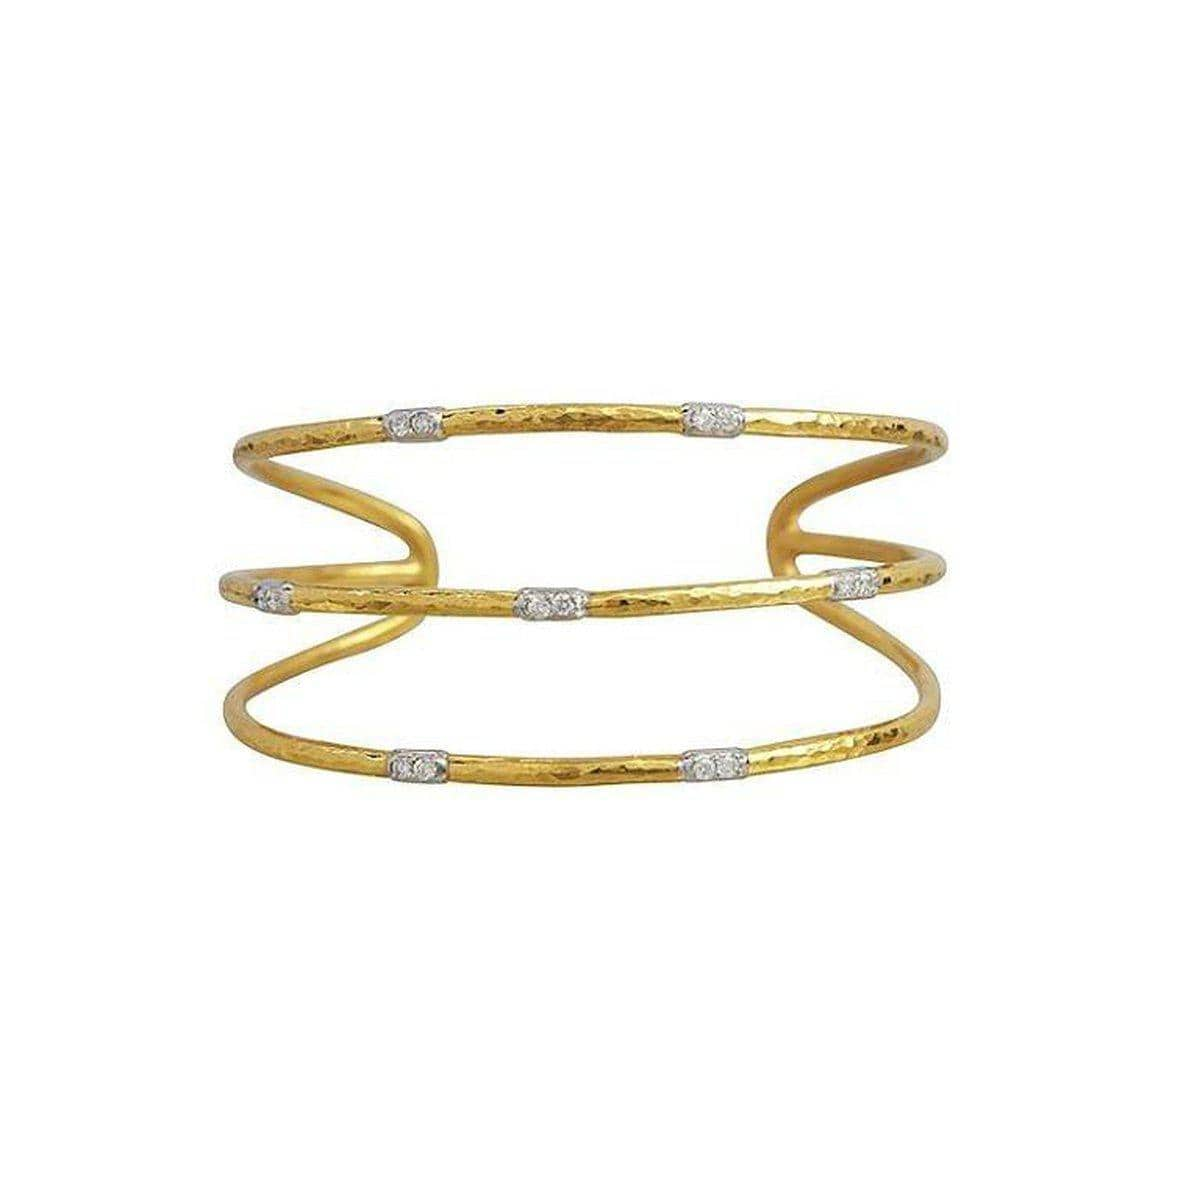 Delicate 22K Gold White Diamond Cuff - CB230-3-7VP2DI